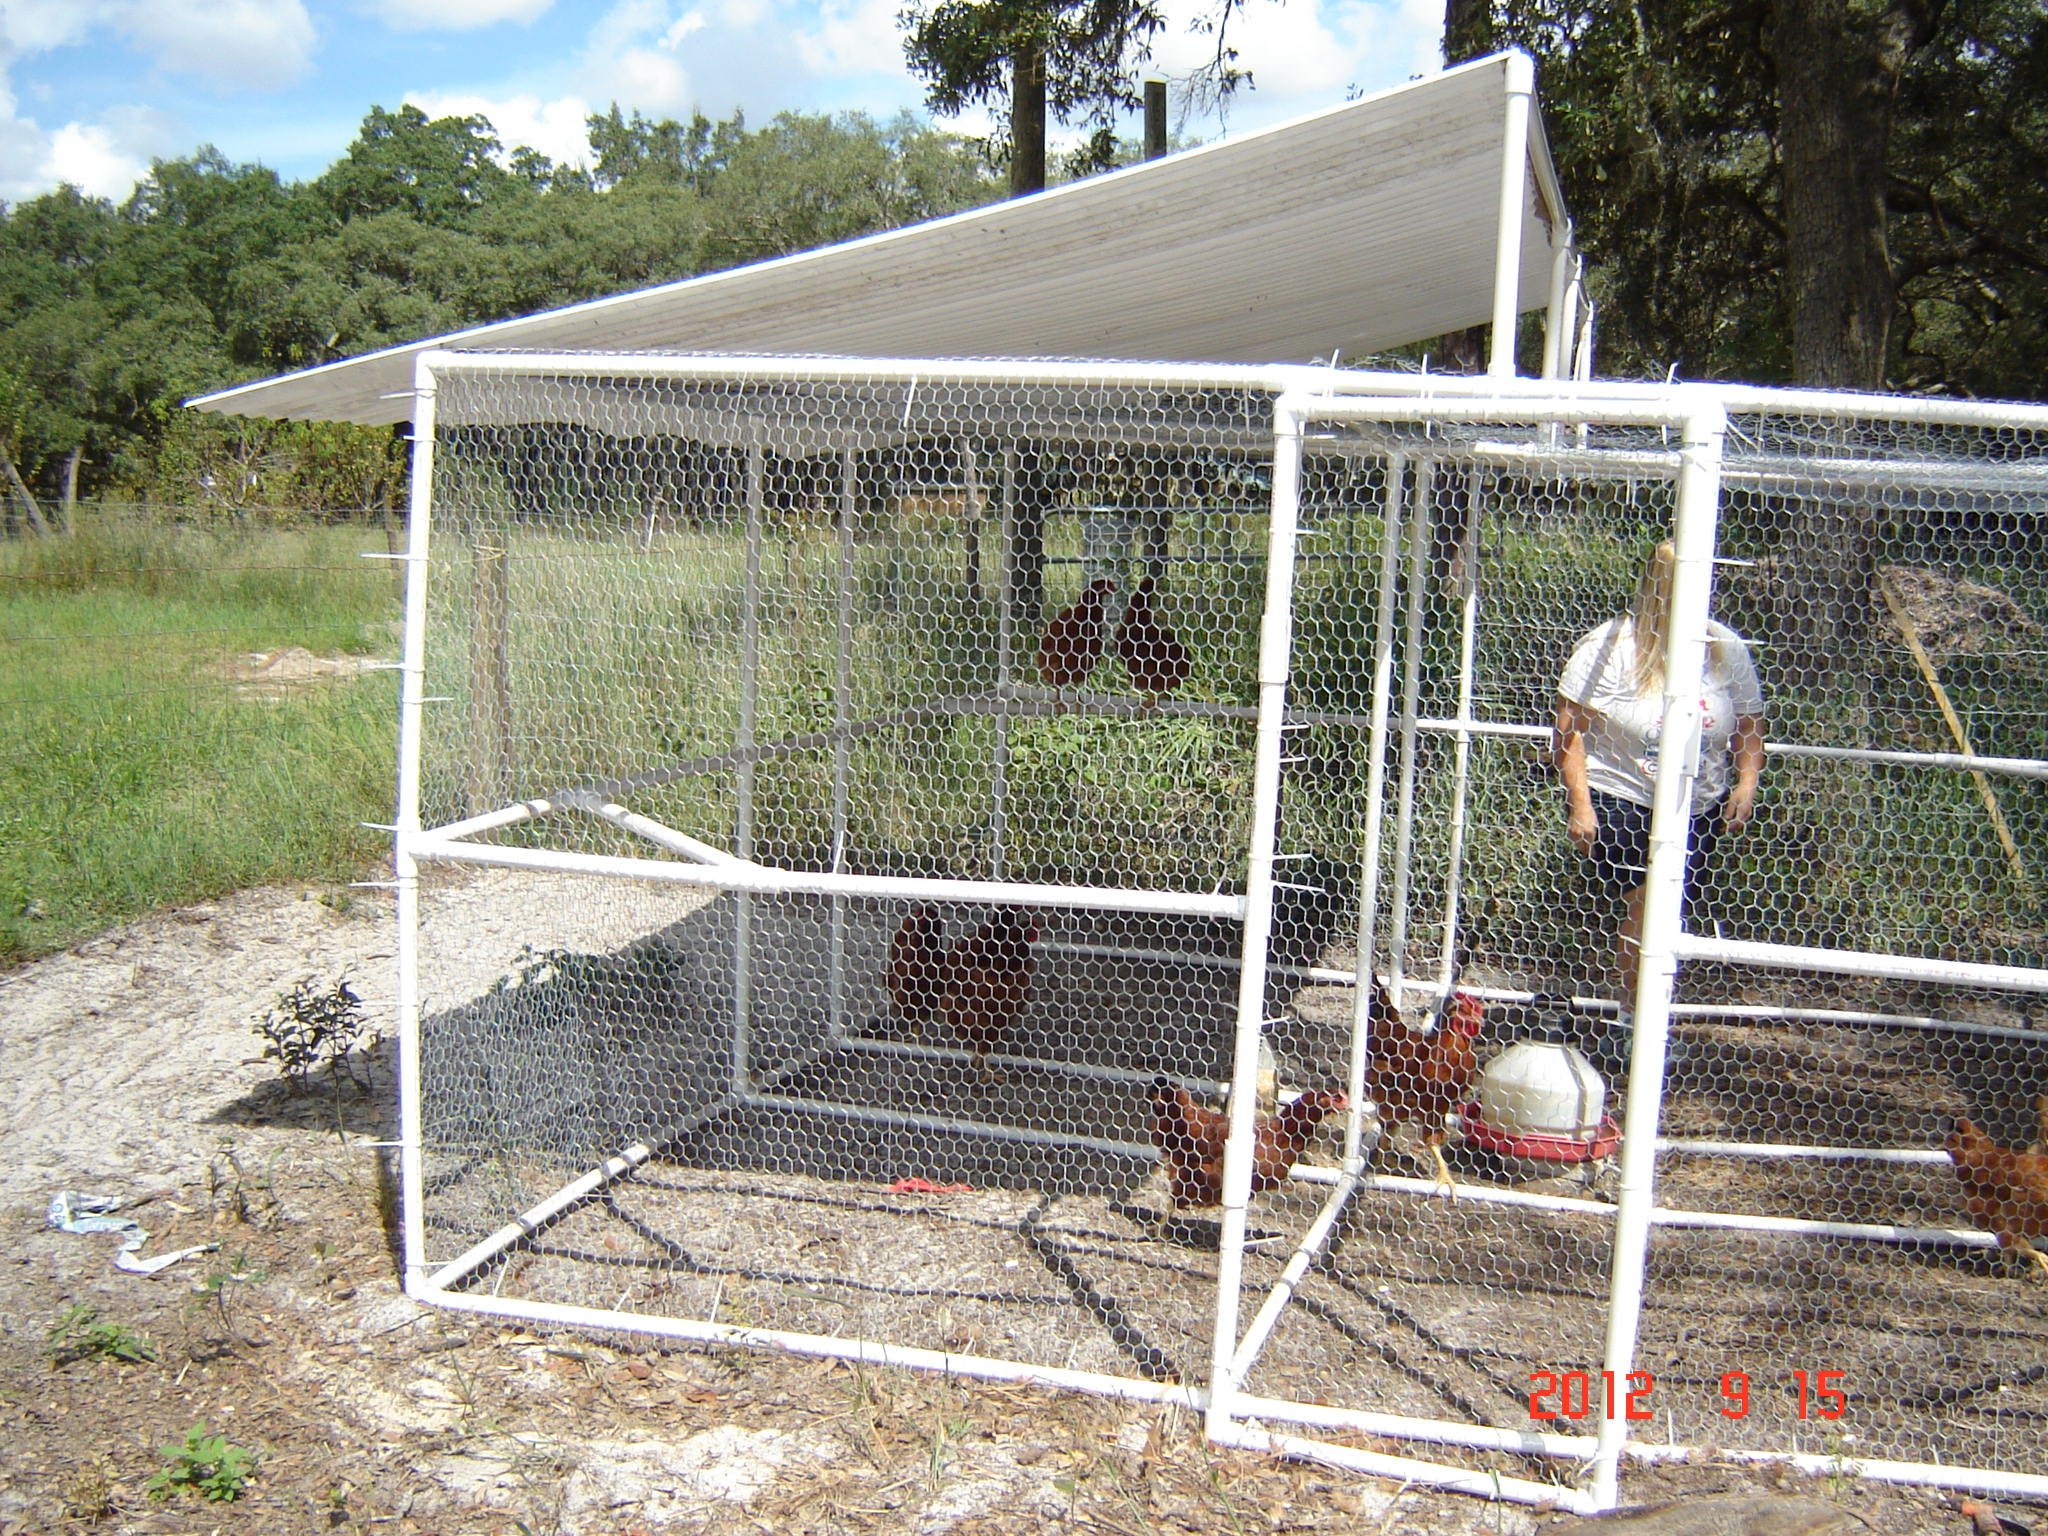 Pictures of a build it yourself pvc chicken pen for Pvc chicken house